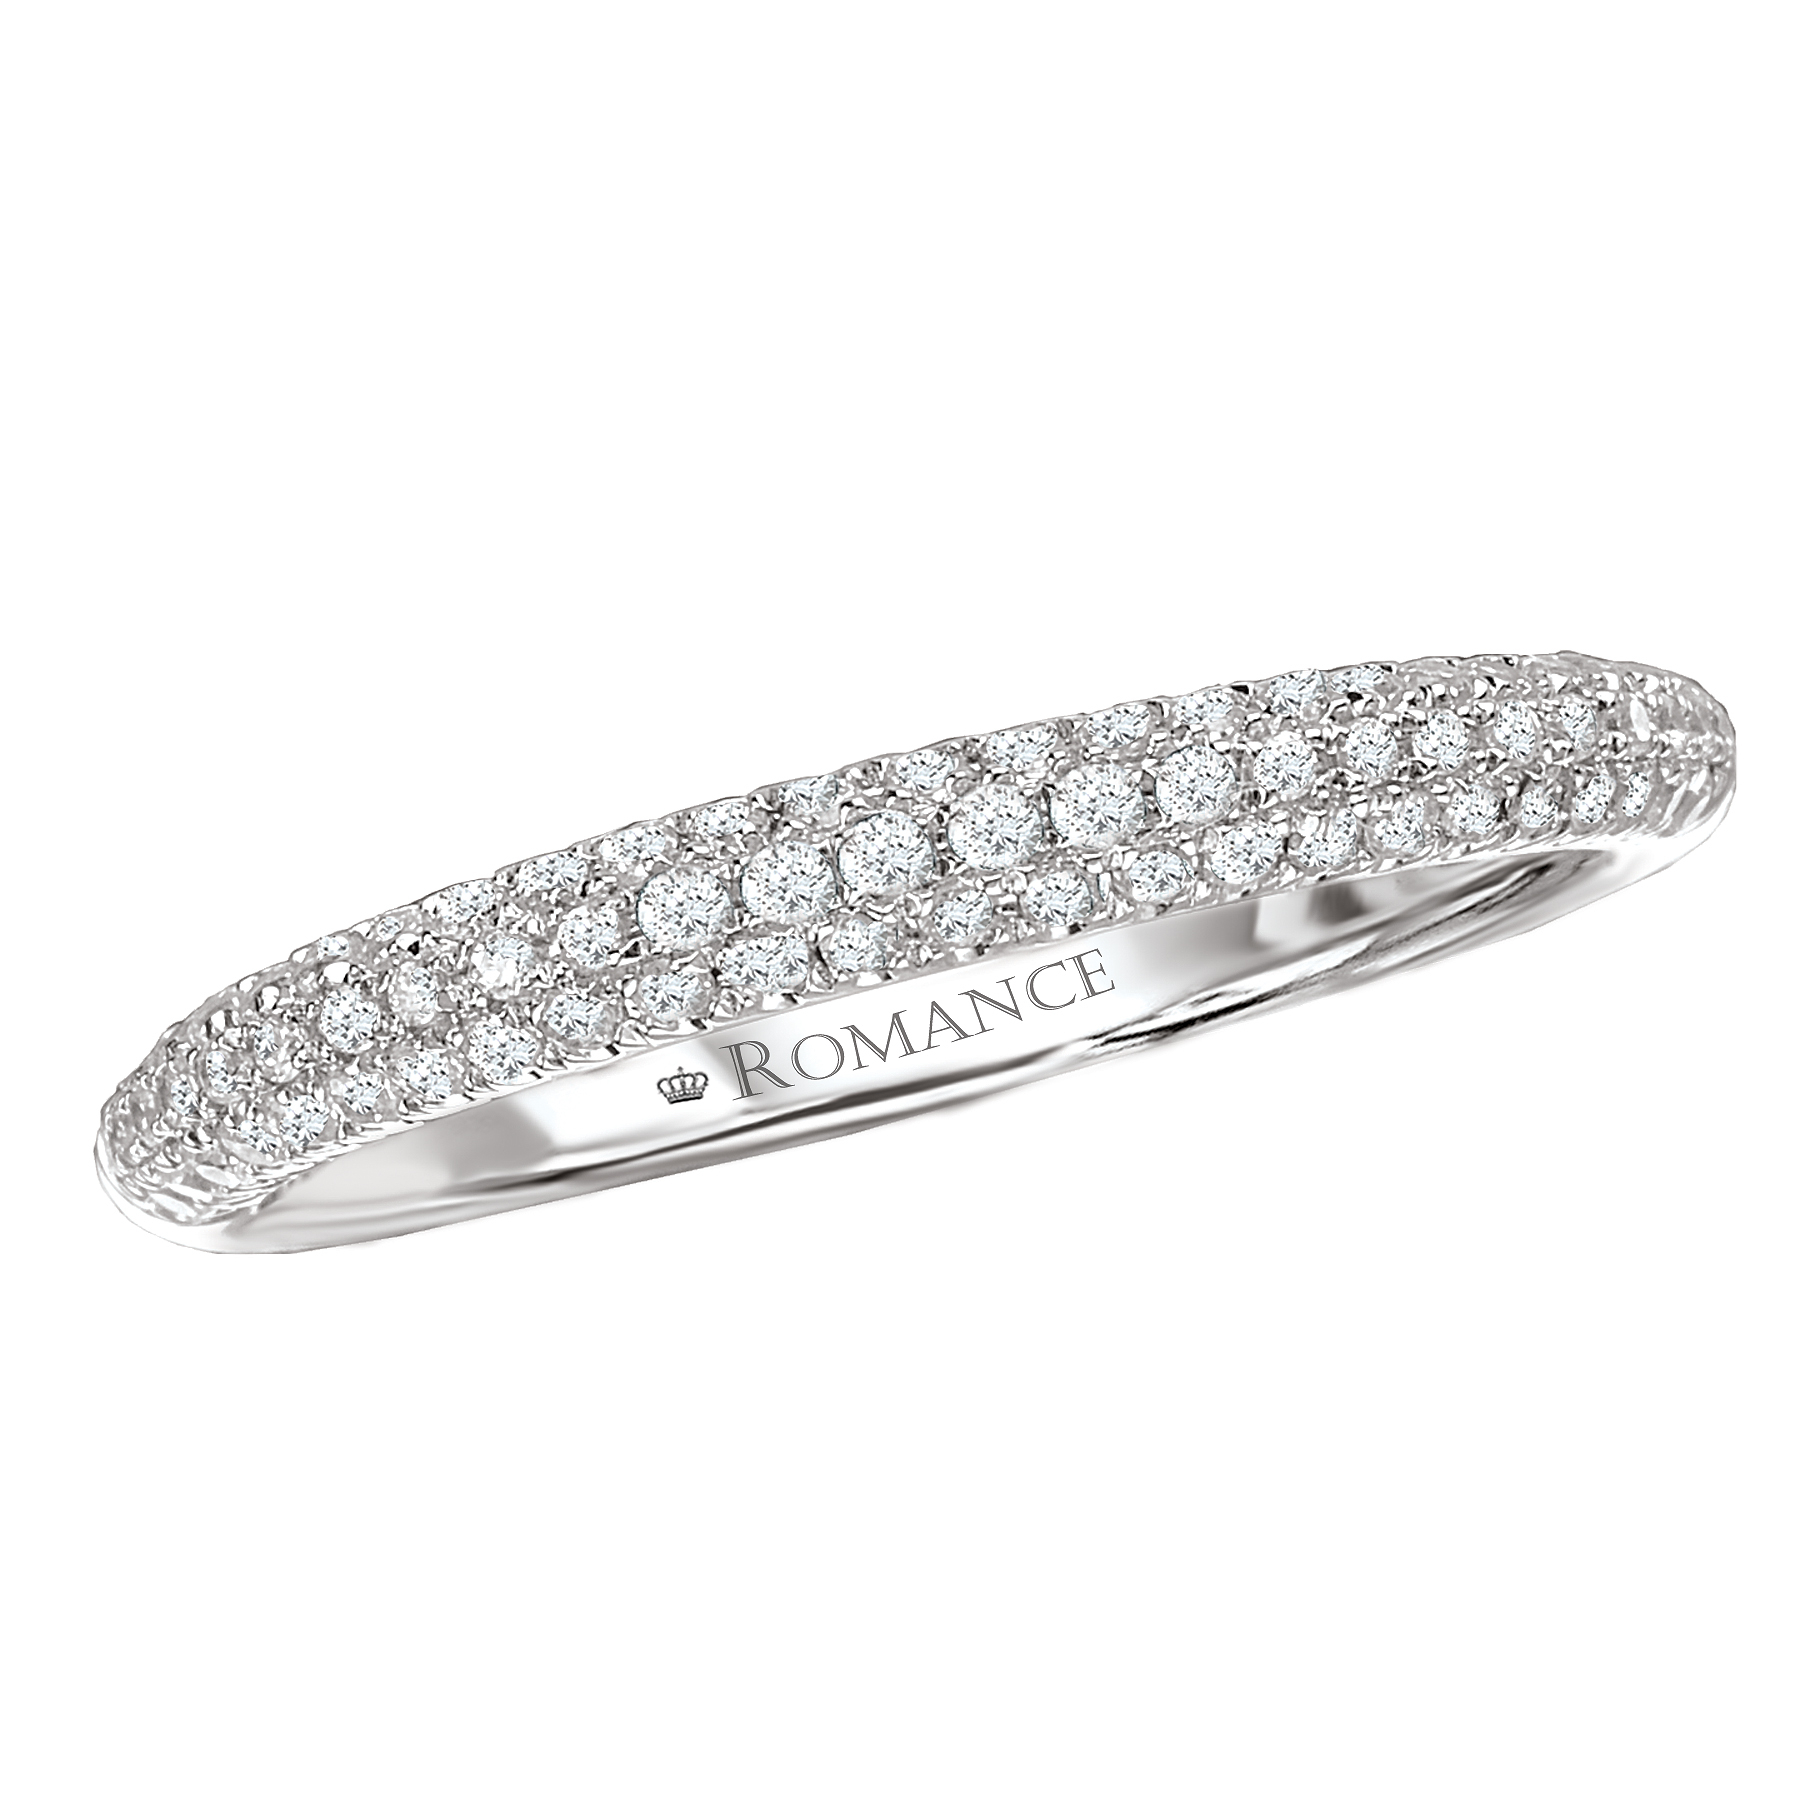 Romance Wedding Bands 117326-W product image